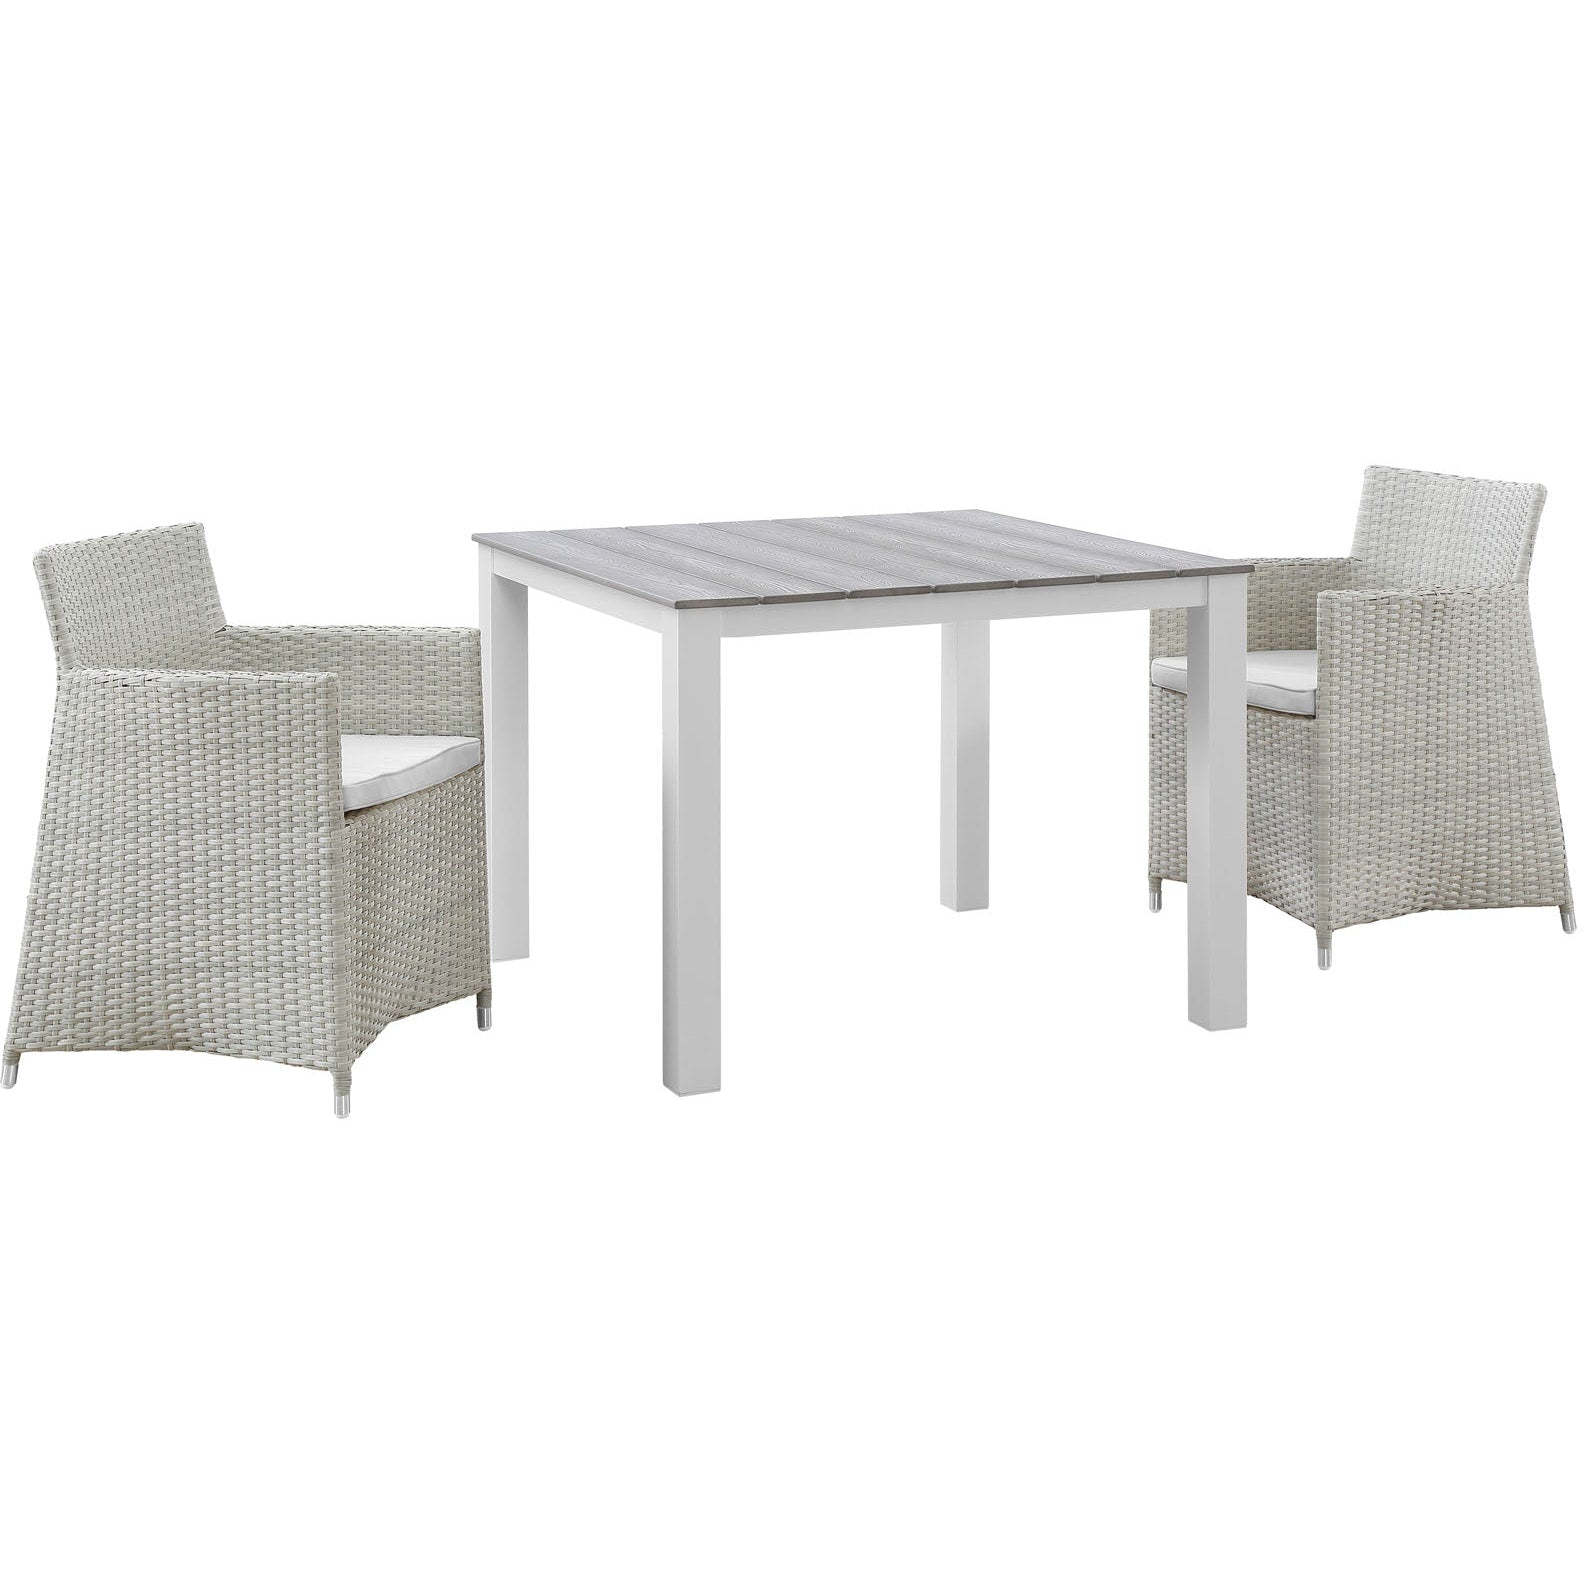 Junction 3 Piece Outdoor Patio Wicker Dining Set - Gray White